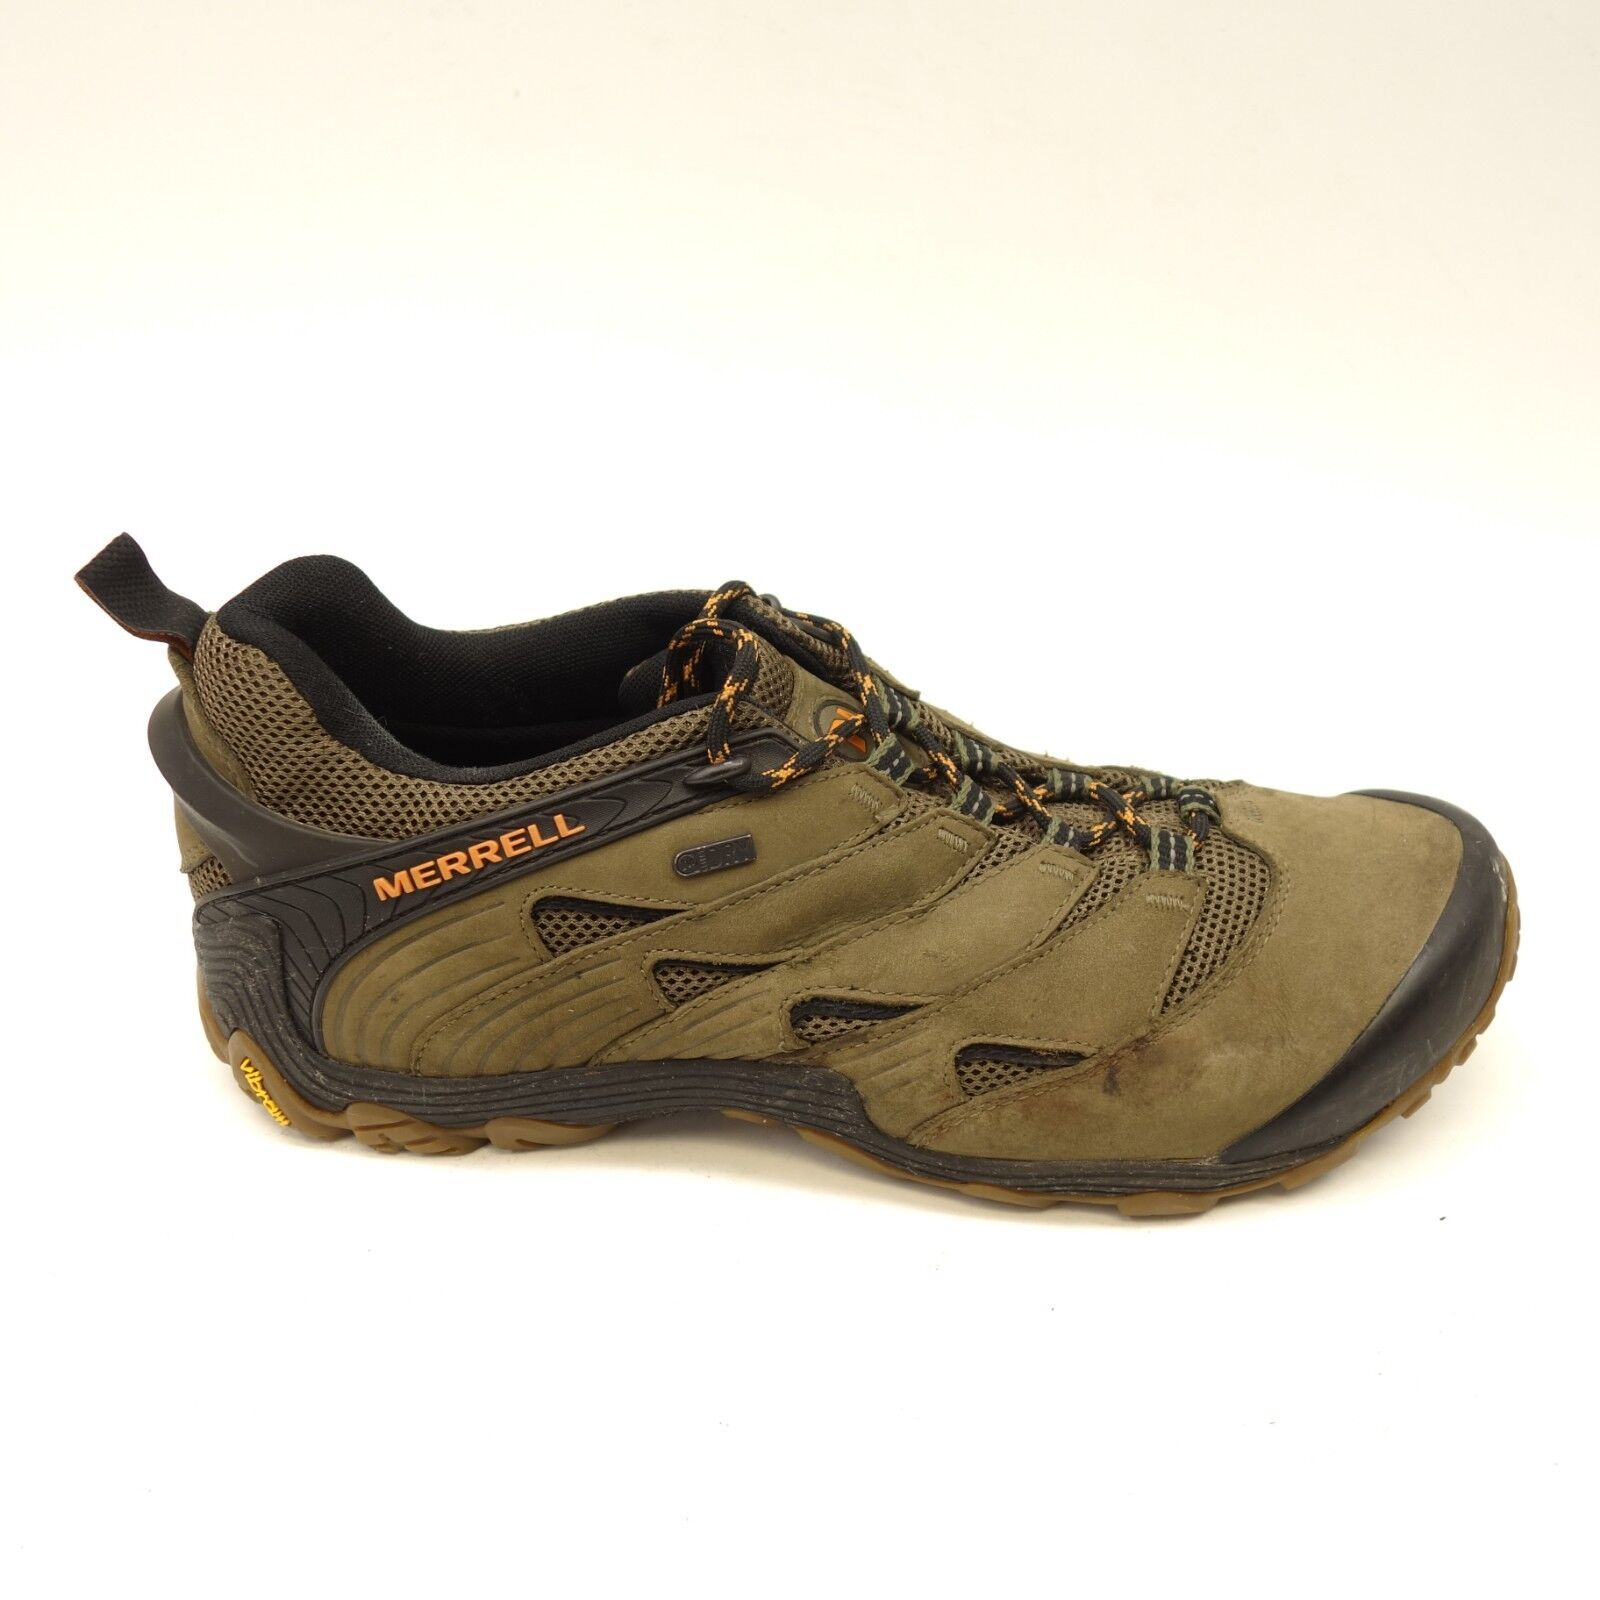 Merrell Mens Moab 2 Low Waterproof Athletic Support Hiking Trail schuhe Größe 13